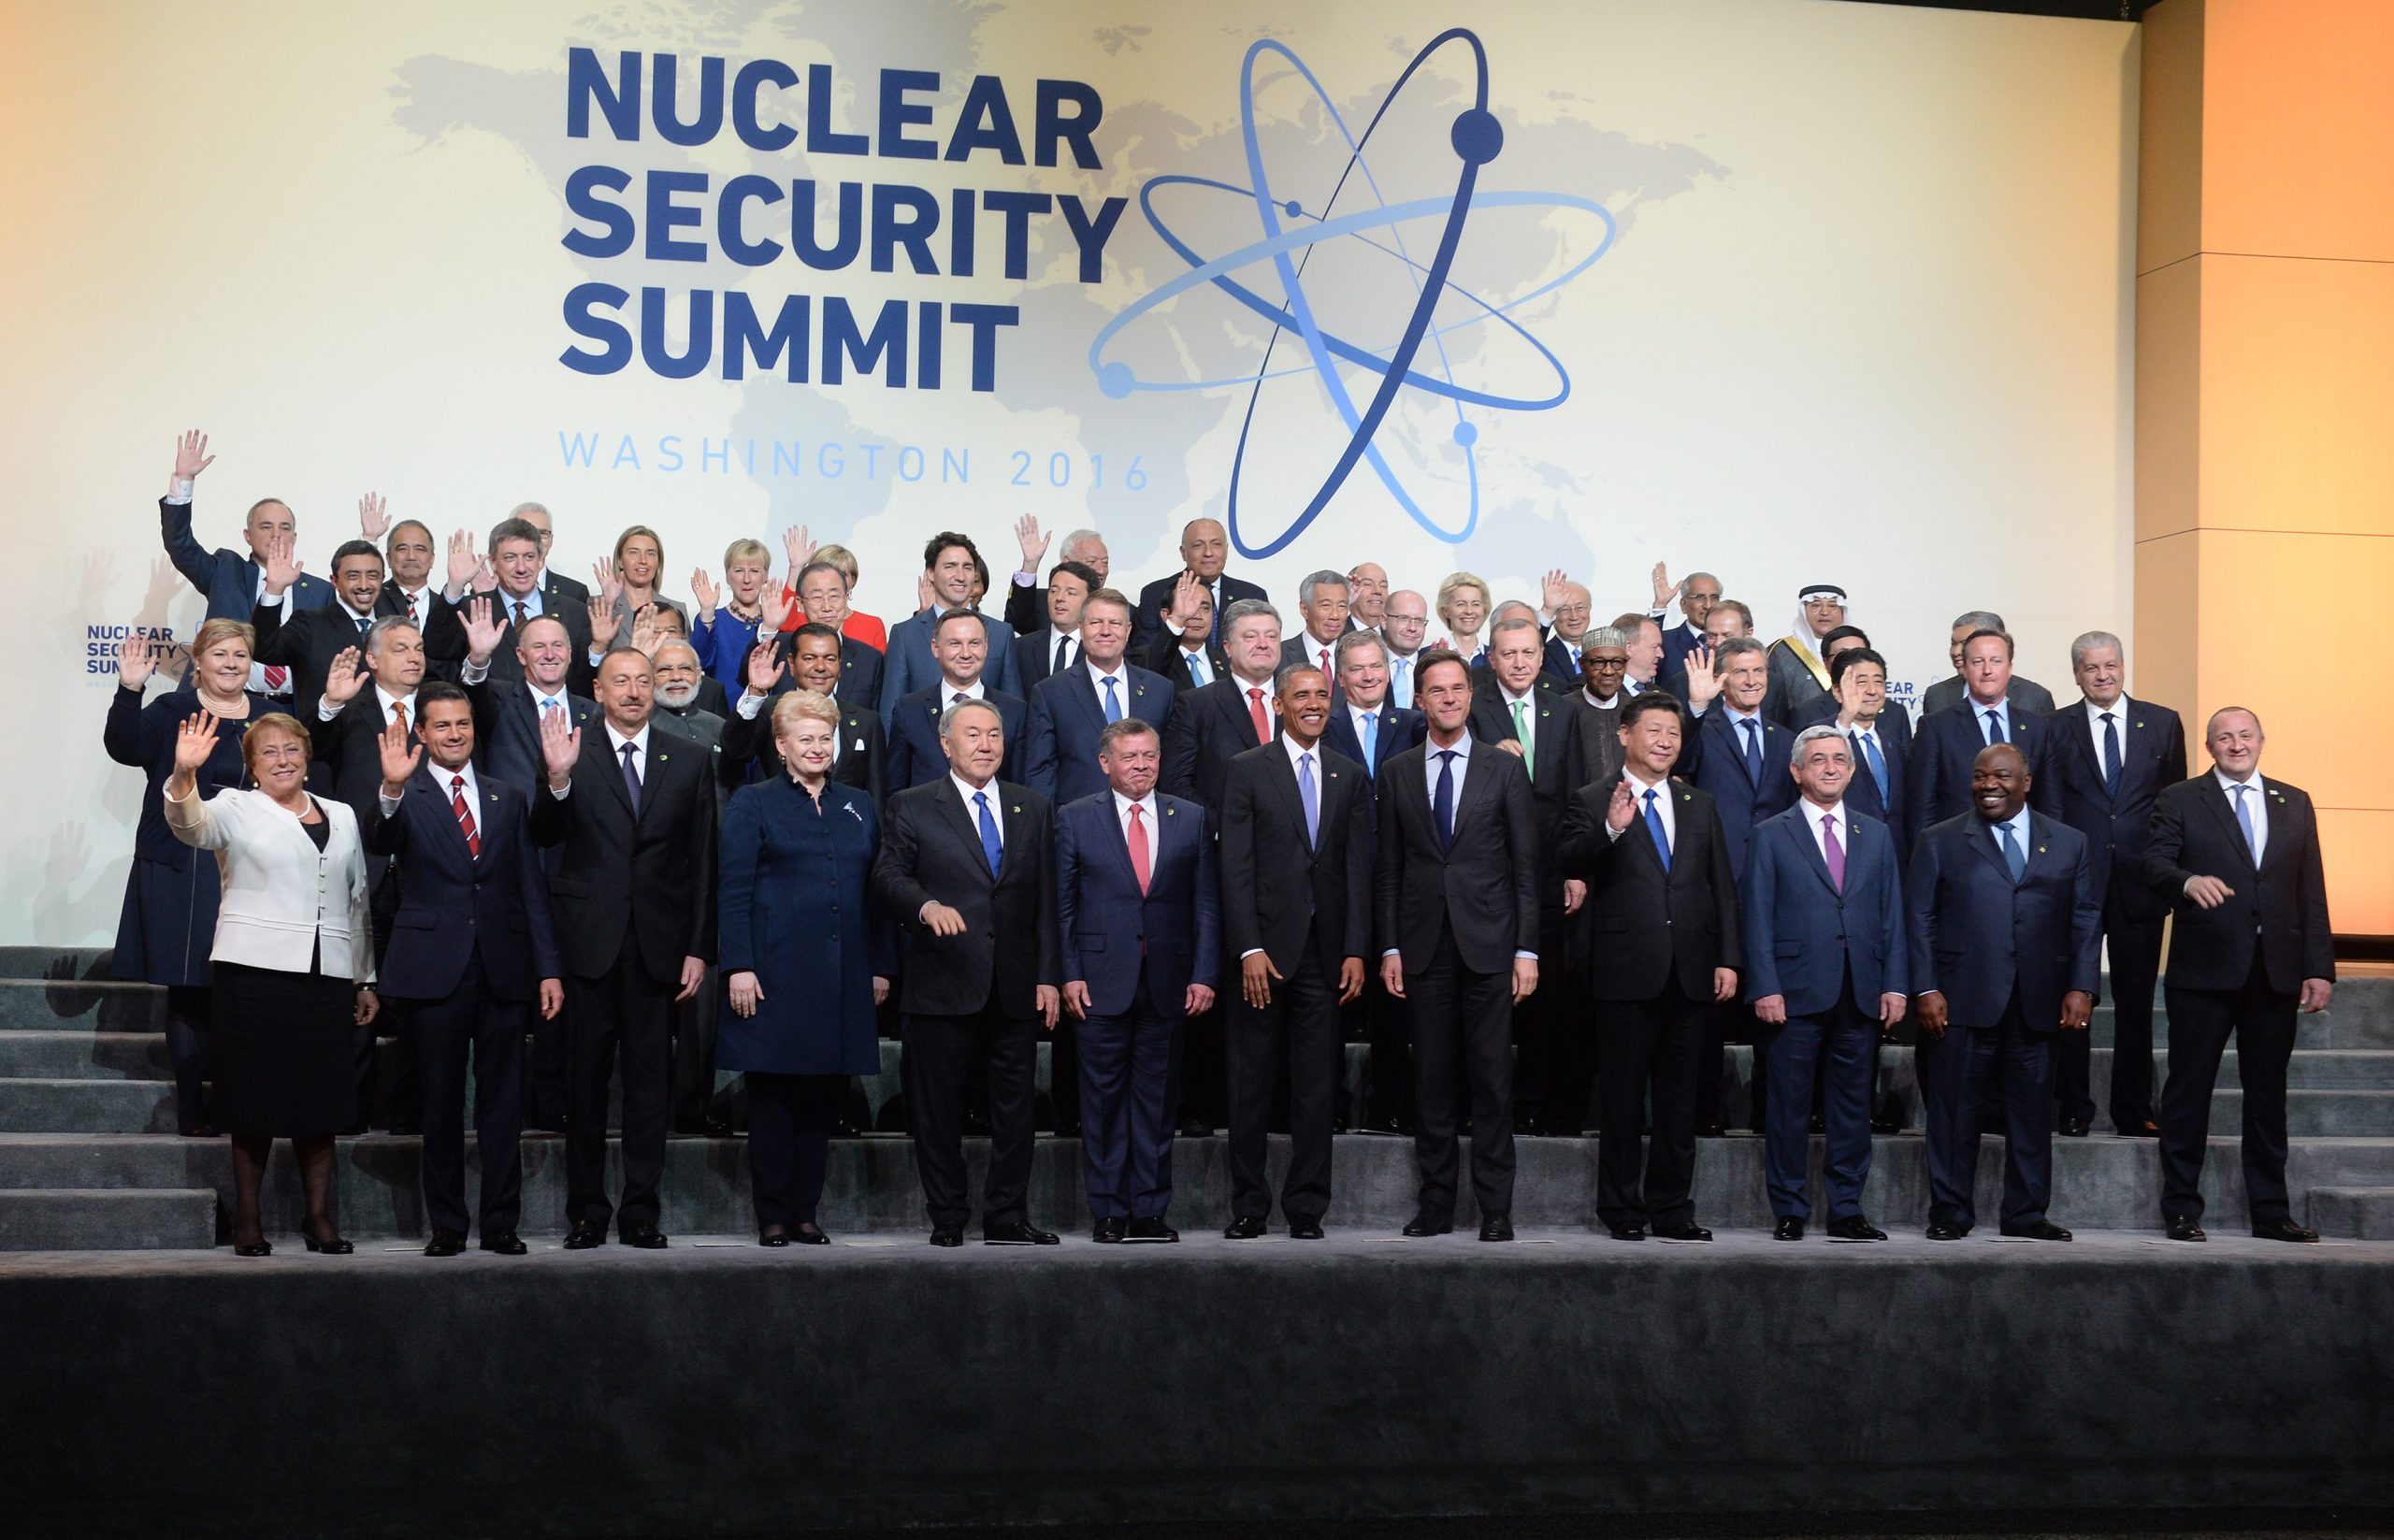 Strengthening Nuclear Security - Practical Steps for Asia Pacific Countries